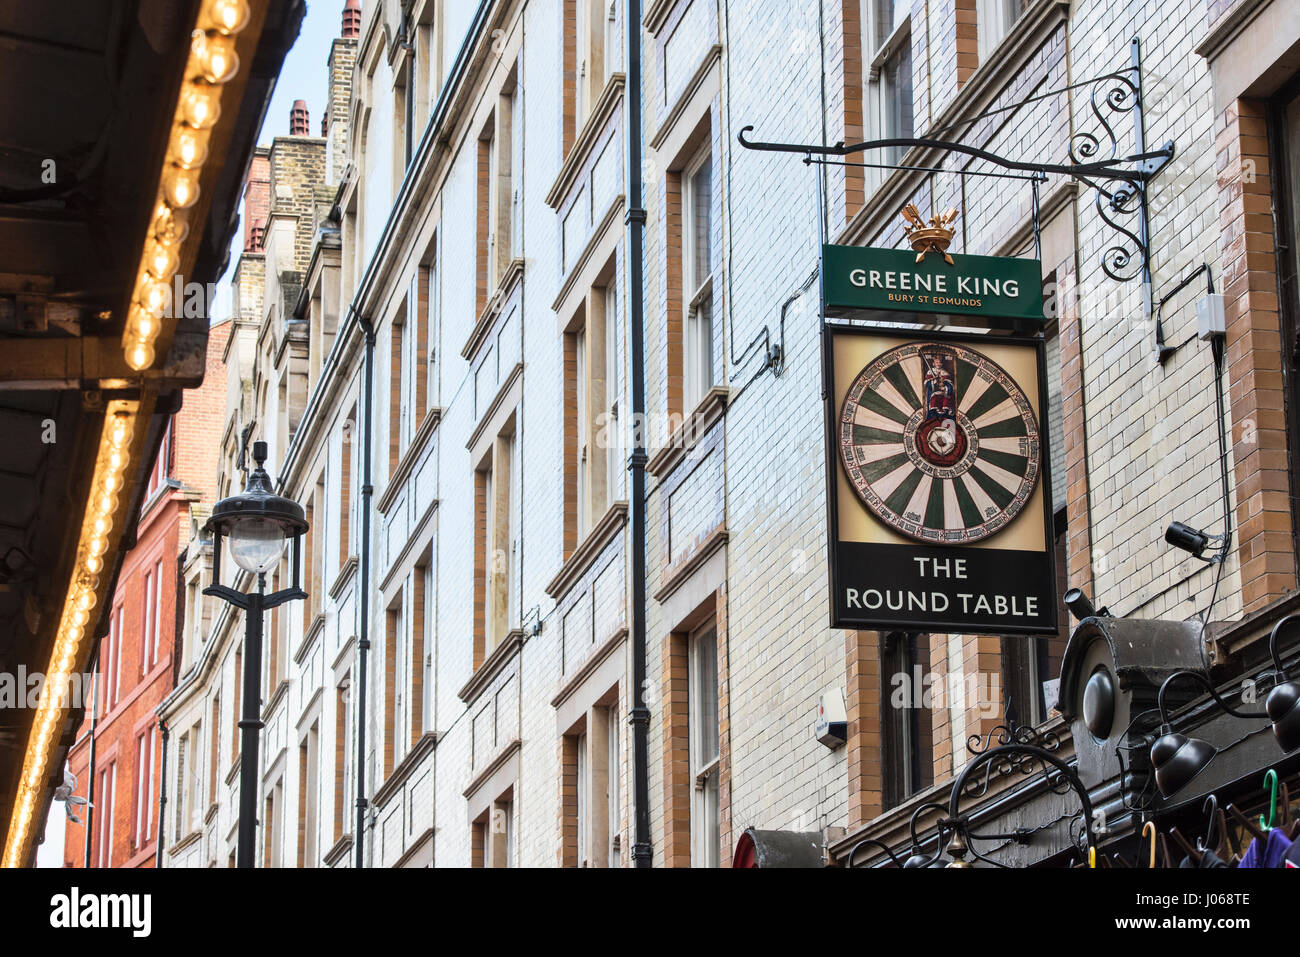 The round table pub sign st martins court leicester square london the round table pub sign st martins court leicester square london watchthetrailerfo